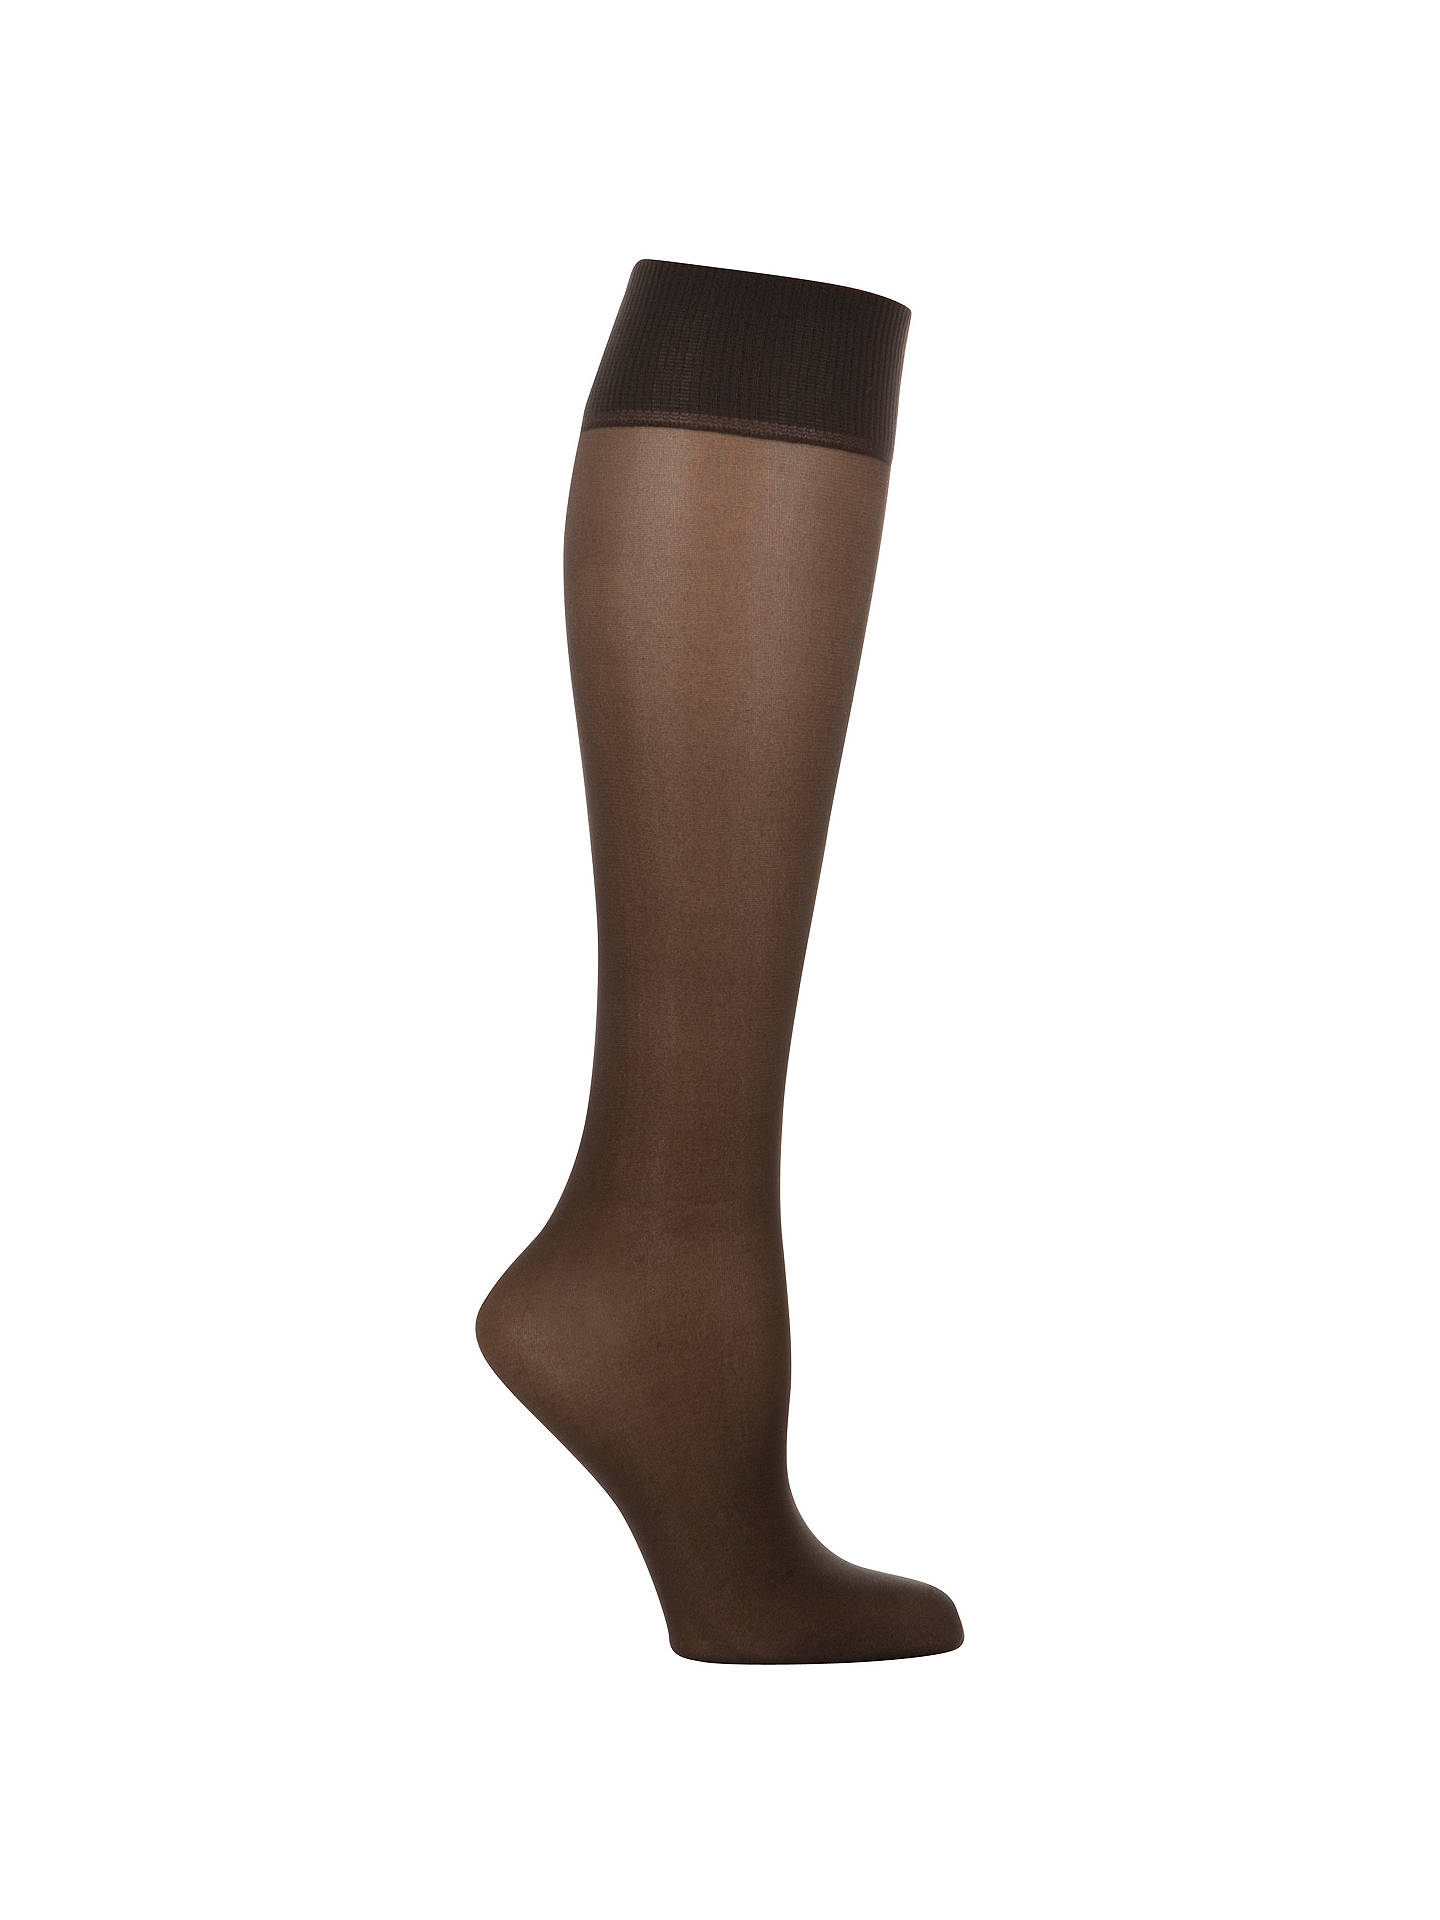 BuyJohn Lewis & Partners 15 Denier Medium Support Knee High Socks, Pack of 2, Black Online at johnlewis.com